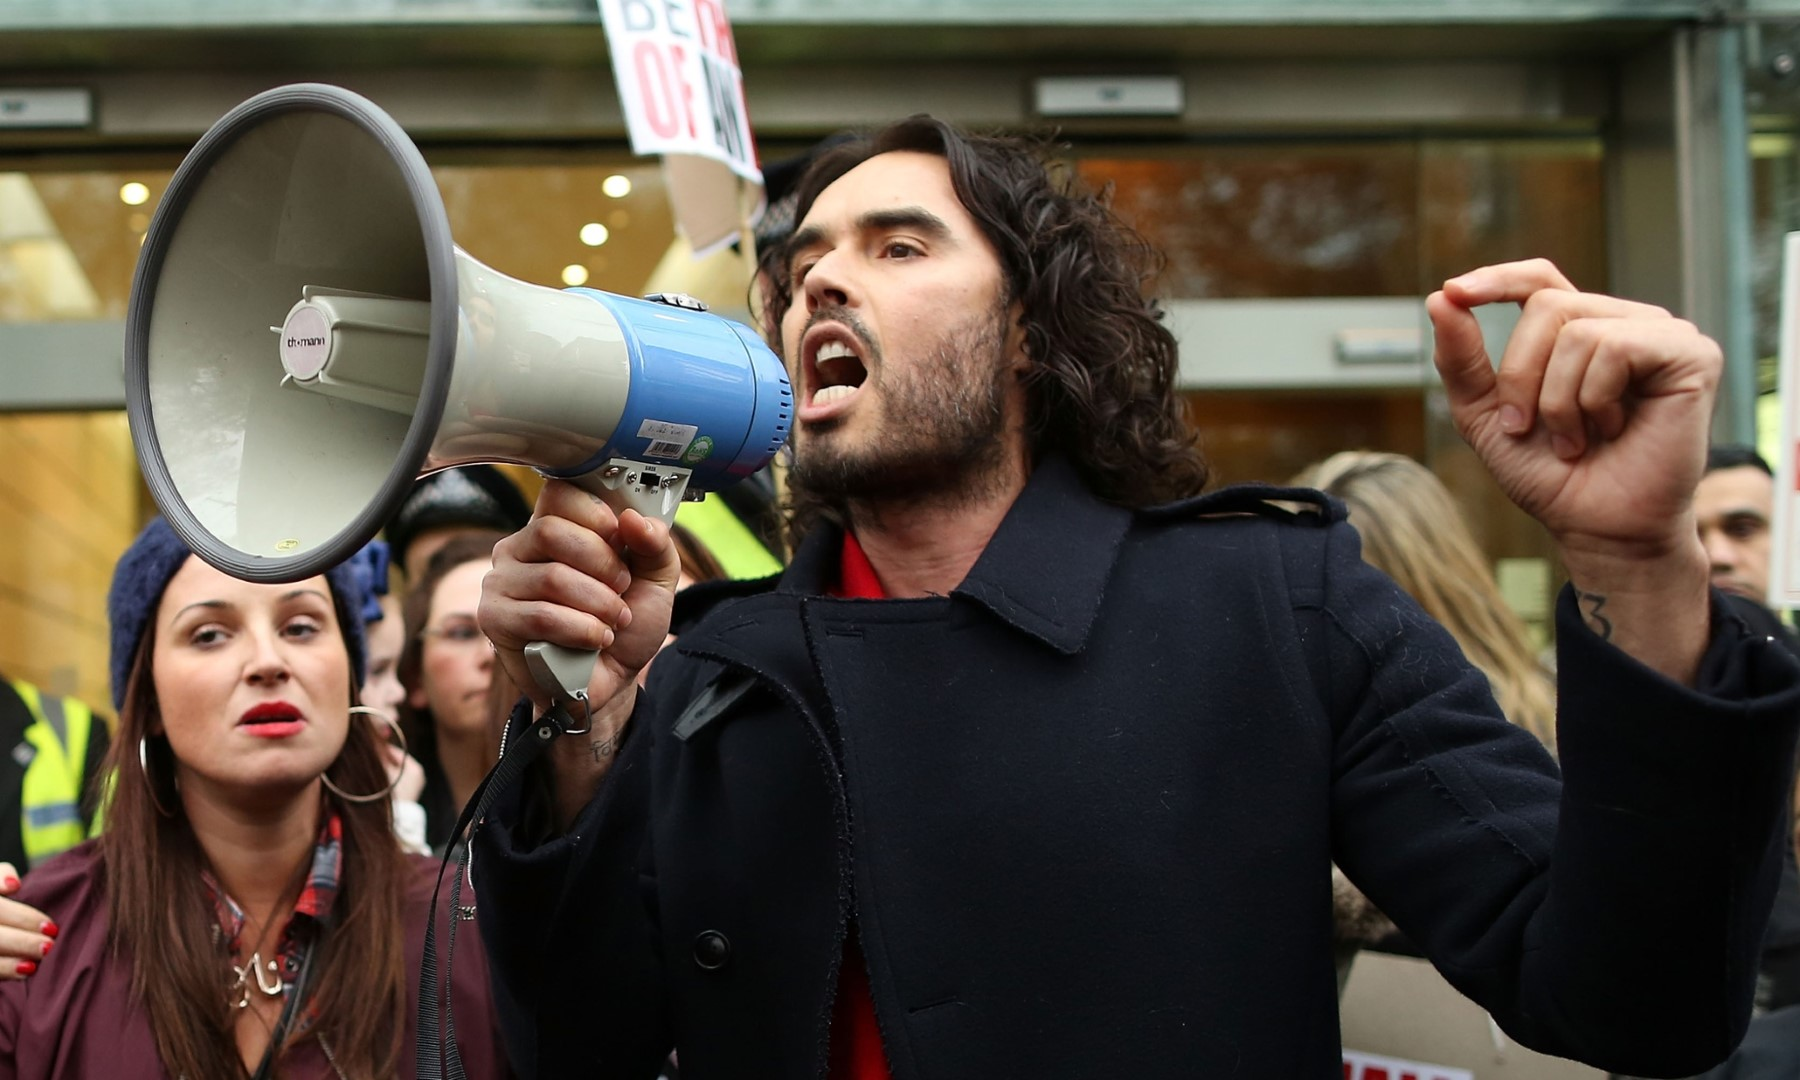 LONDON, ENGLAND - DECEMBER 01: Comedian Russell Brand joins residents and supporters from the New Era housing estate in East London as they demonstrate against US investment company Westbrook's plans to evict 93 families on December 1, 2014 in London, England. The protestors have taken their demonstration to Westbrooks Headquarters in Mayfair and plan to present a petition to the Prime Minister. WestBrook's are said to be planning to evict the tenants, refurbish the estate and re-let the flats at full market value. (Photo by Dan Kitwood/Getty Images)